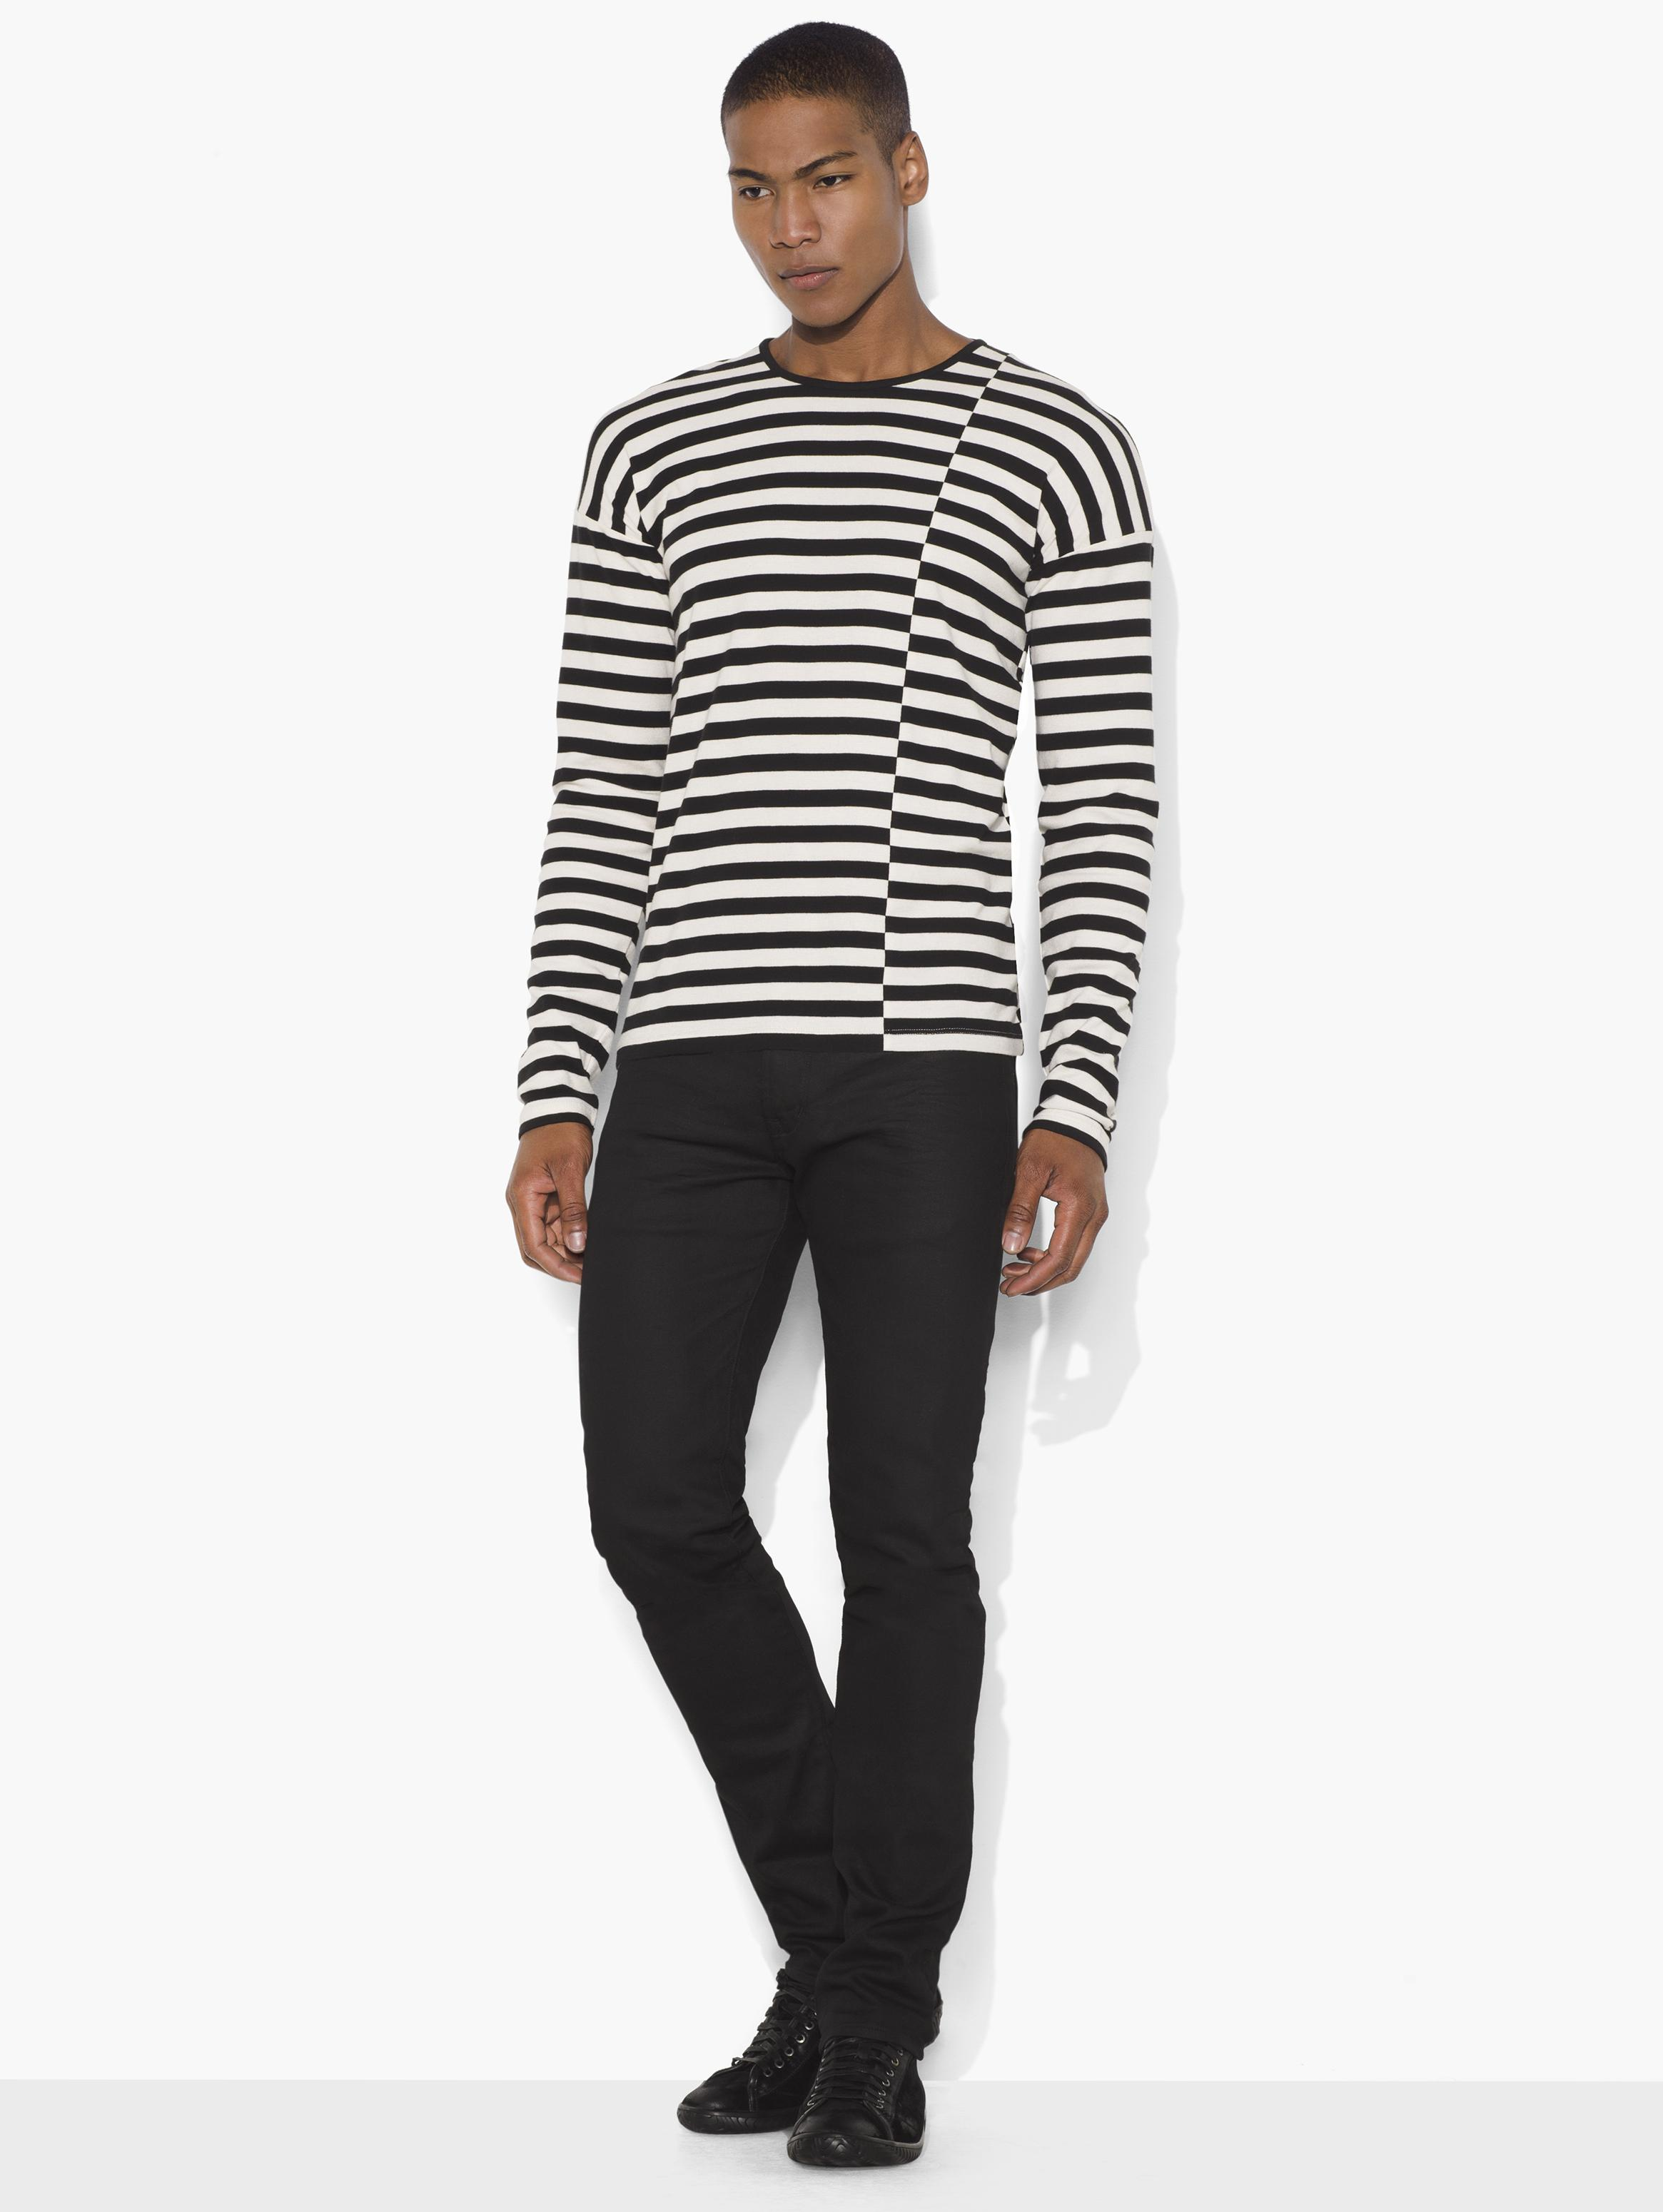 Asymmetric Striped Crewneck